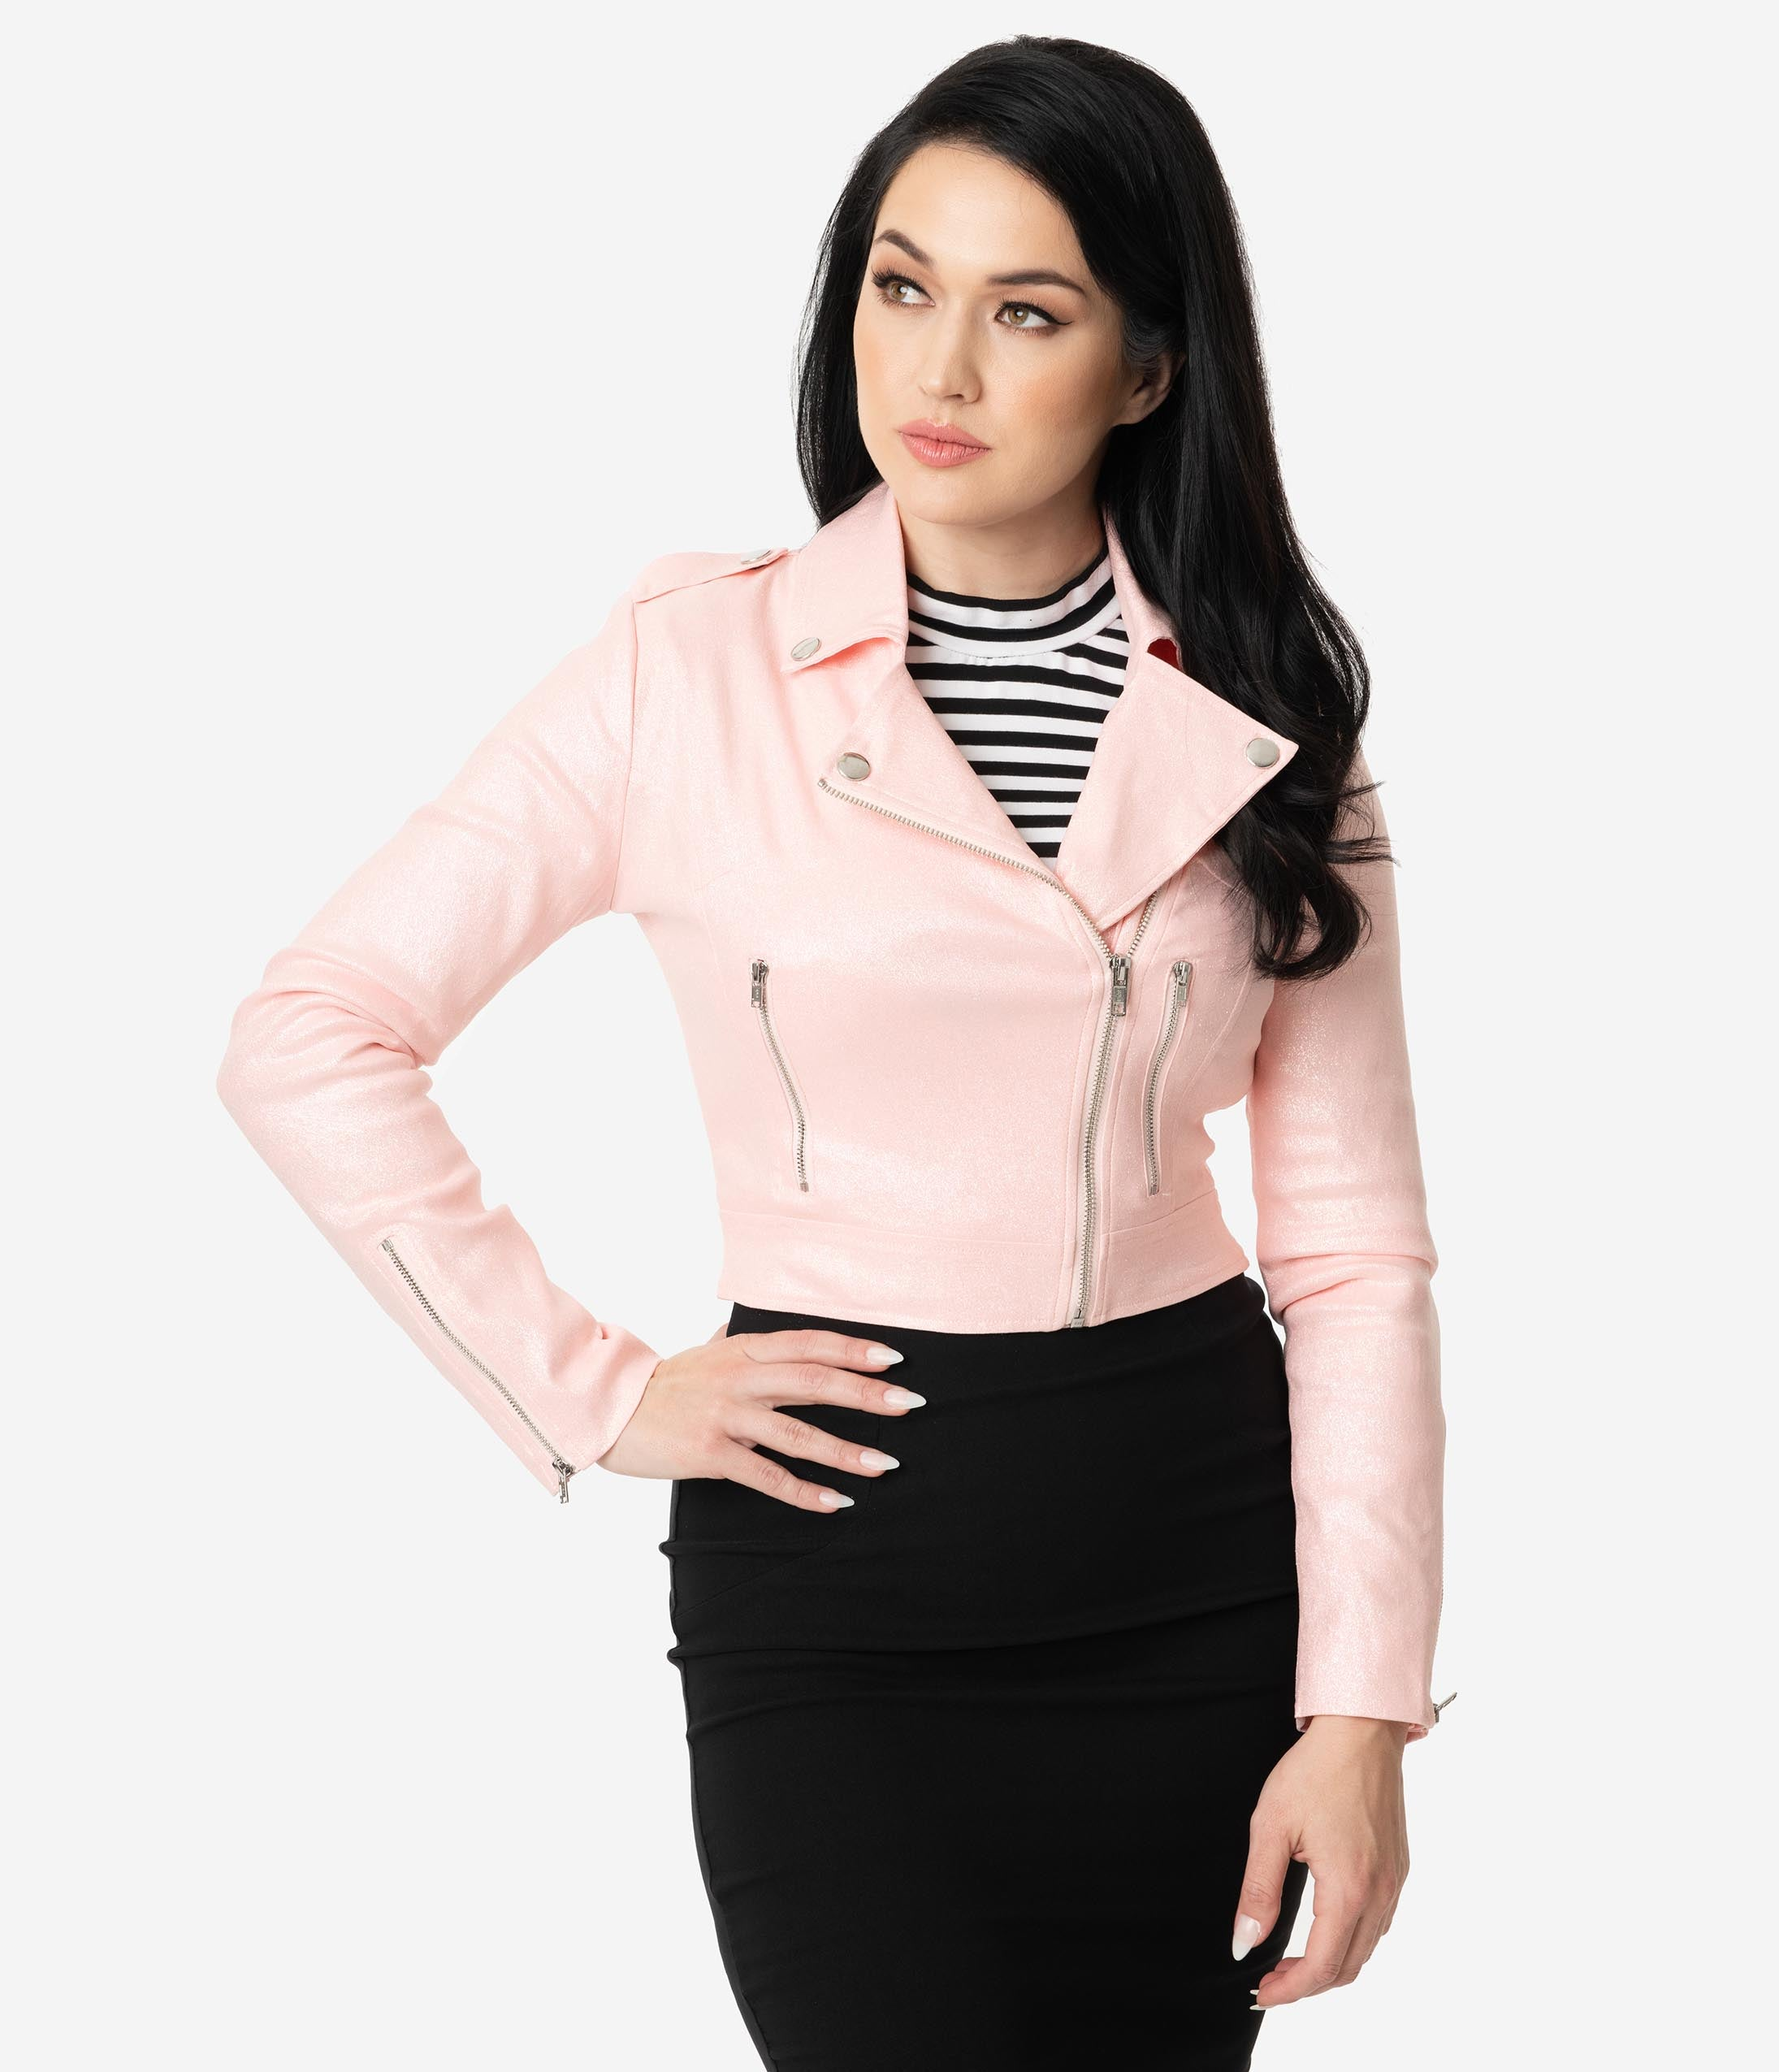 1950s Jackets, Coats, Bolero | Swing, Pin Up, Rockabilly Collectif Retro Style Pink Glitter Outlaw Biker Cropped Jacket $68.00 AT vintagedancer.com